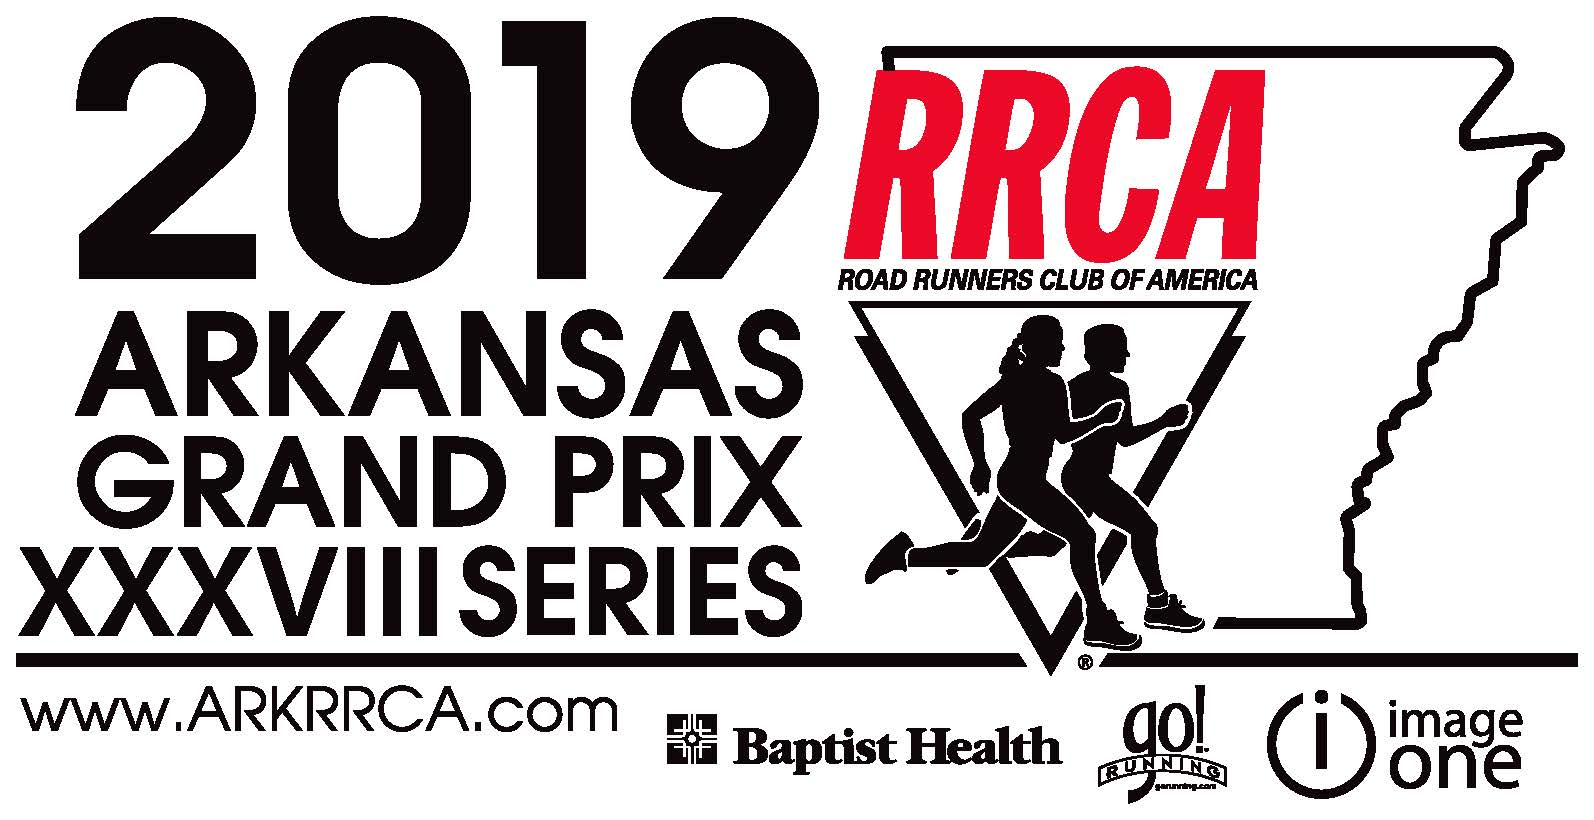 Arkansas Rrca And Grand Prix Welcome To The Online Home